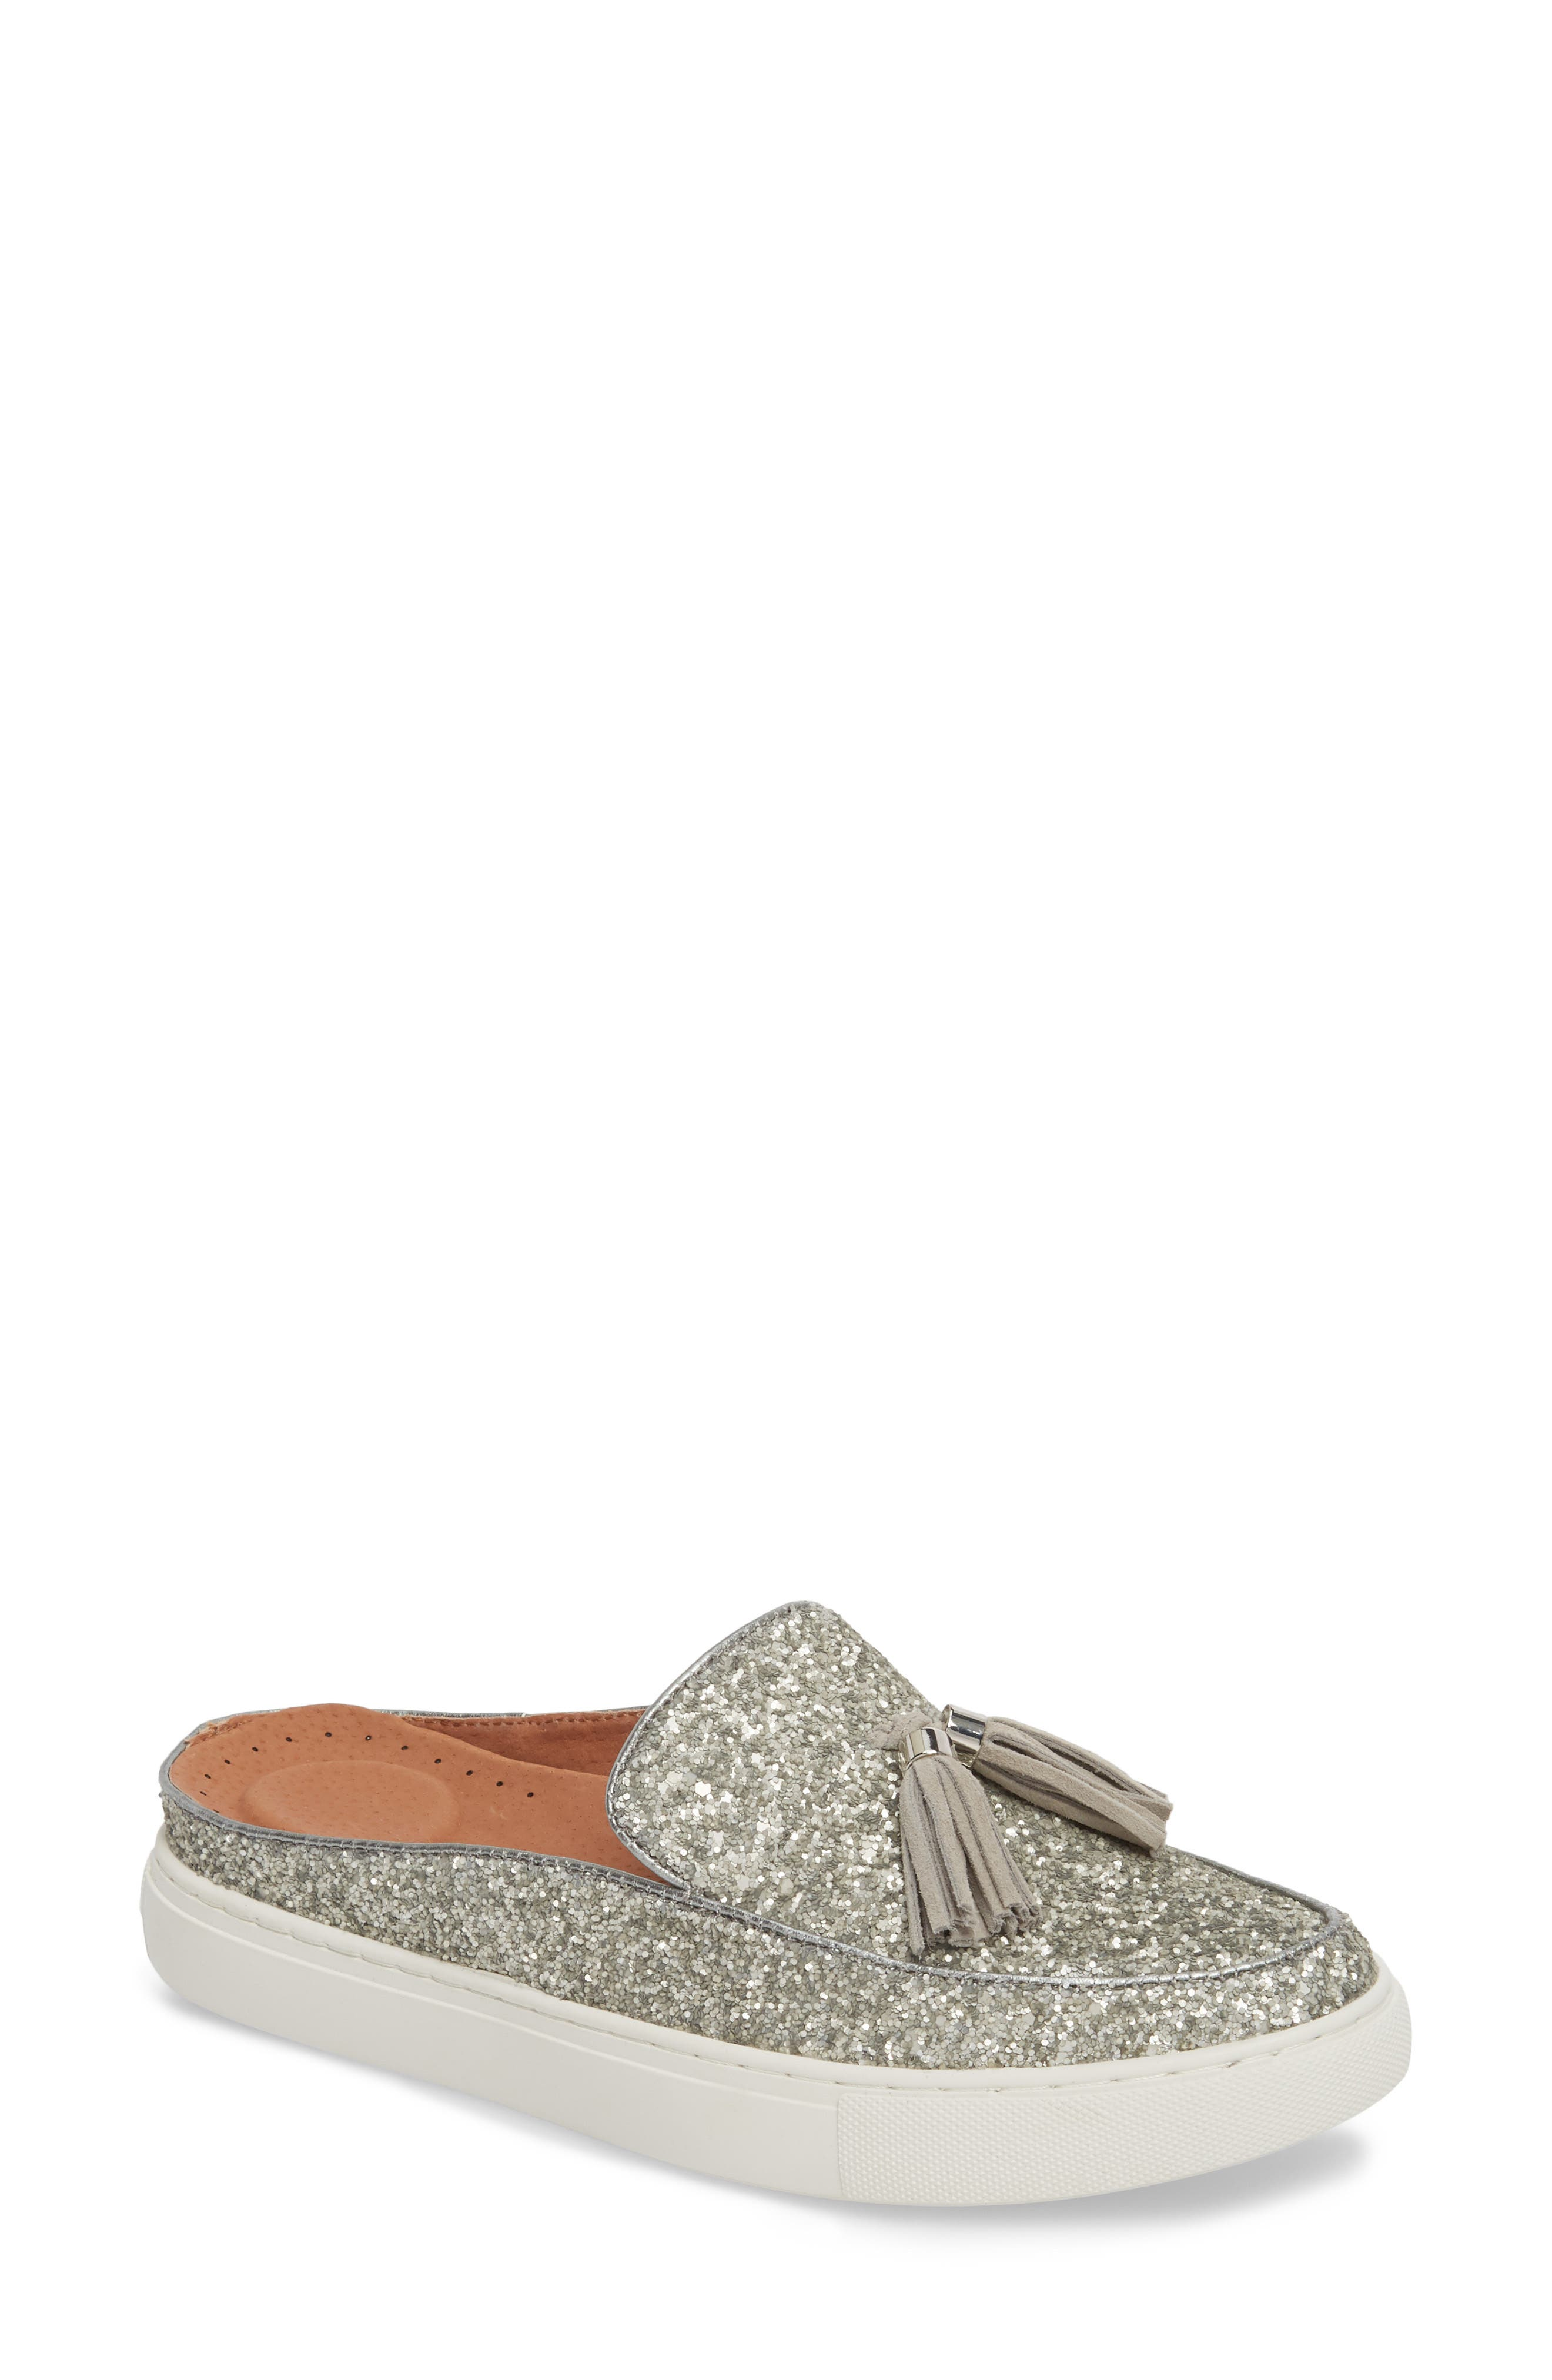 Rory Loafer Mule Sneaker,                         Main,                         color, 040